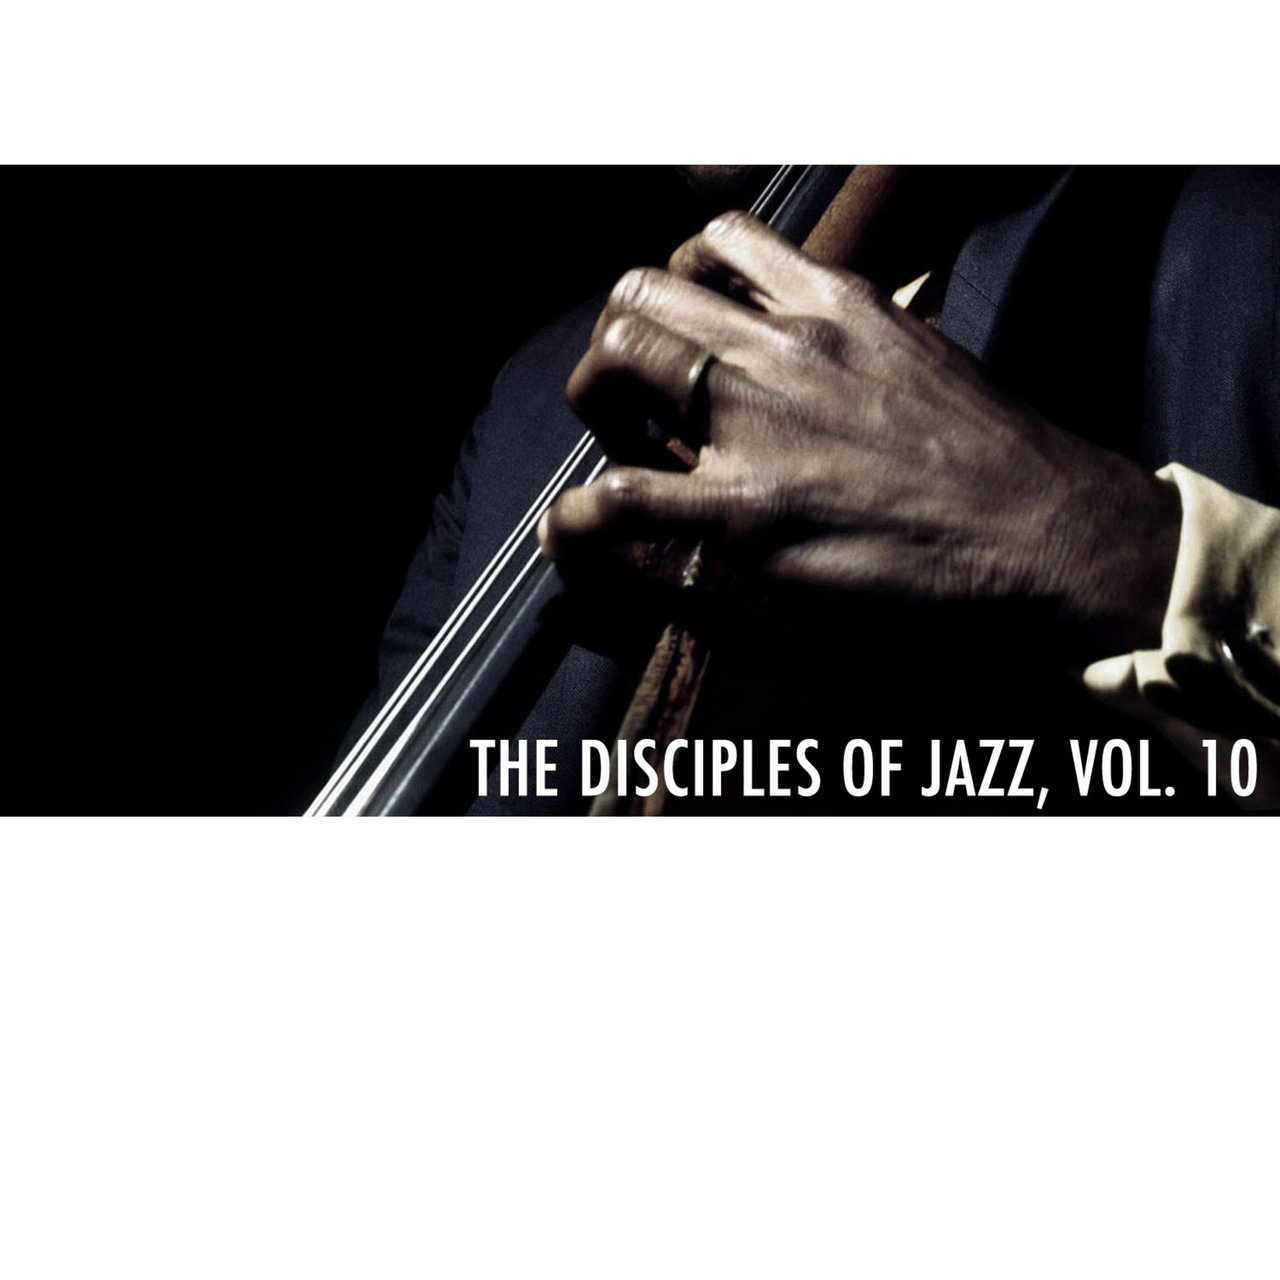 The Disciples of Jazz, Vol. 10